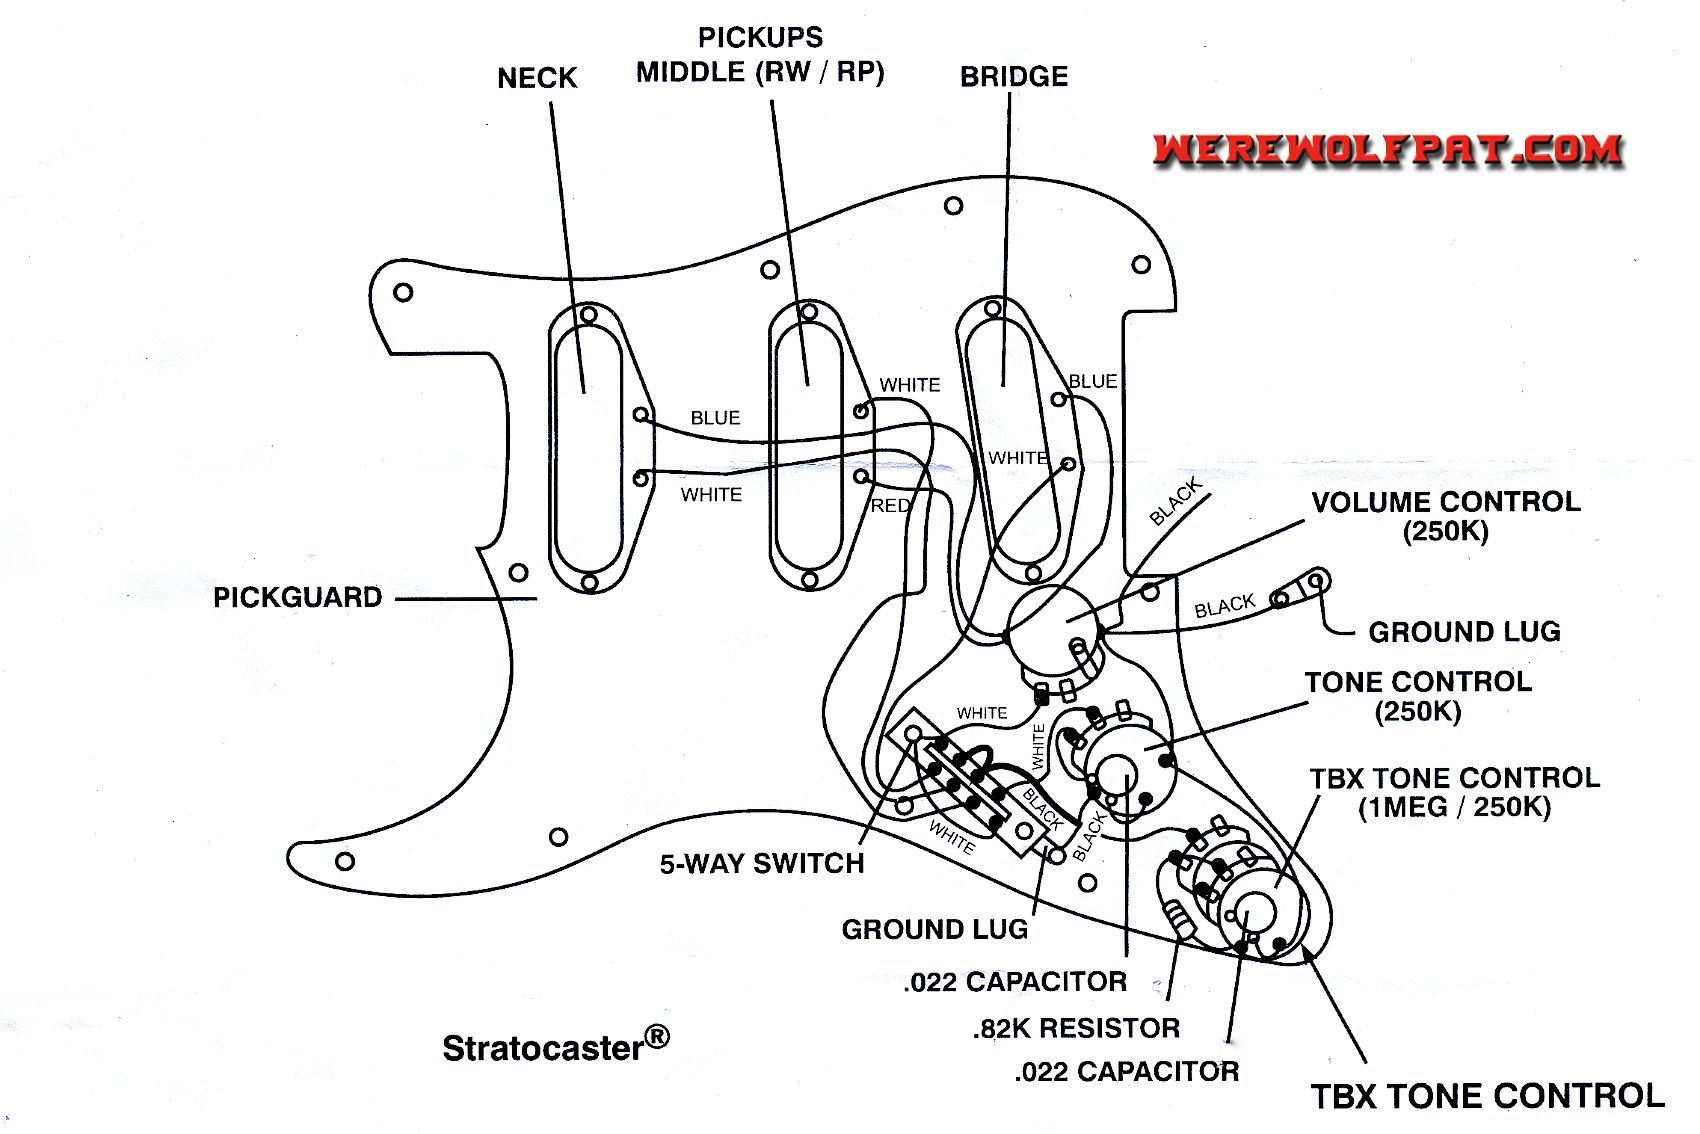 wiring diagram electric guitar wiring diagrams and schematics Fender Squier Strat Wiring Diagram